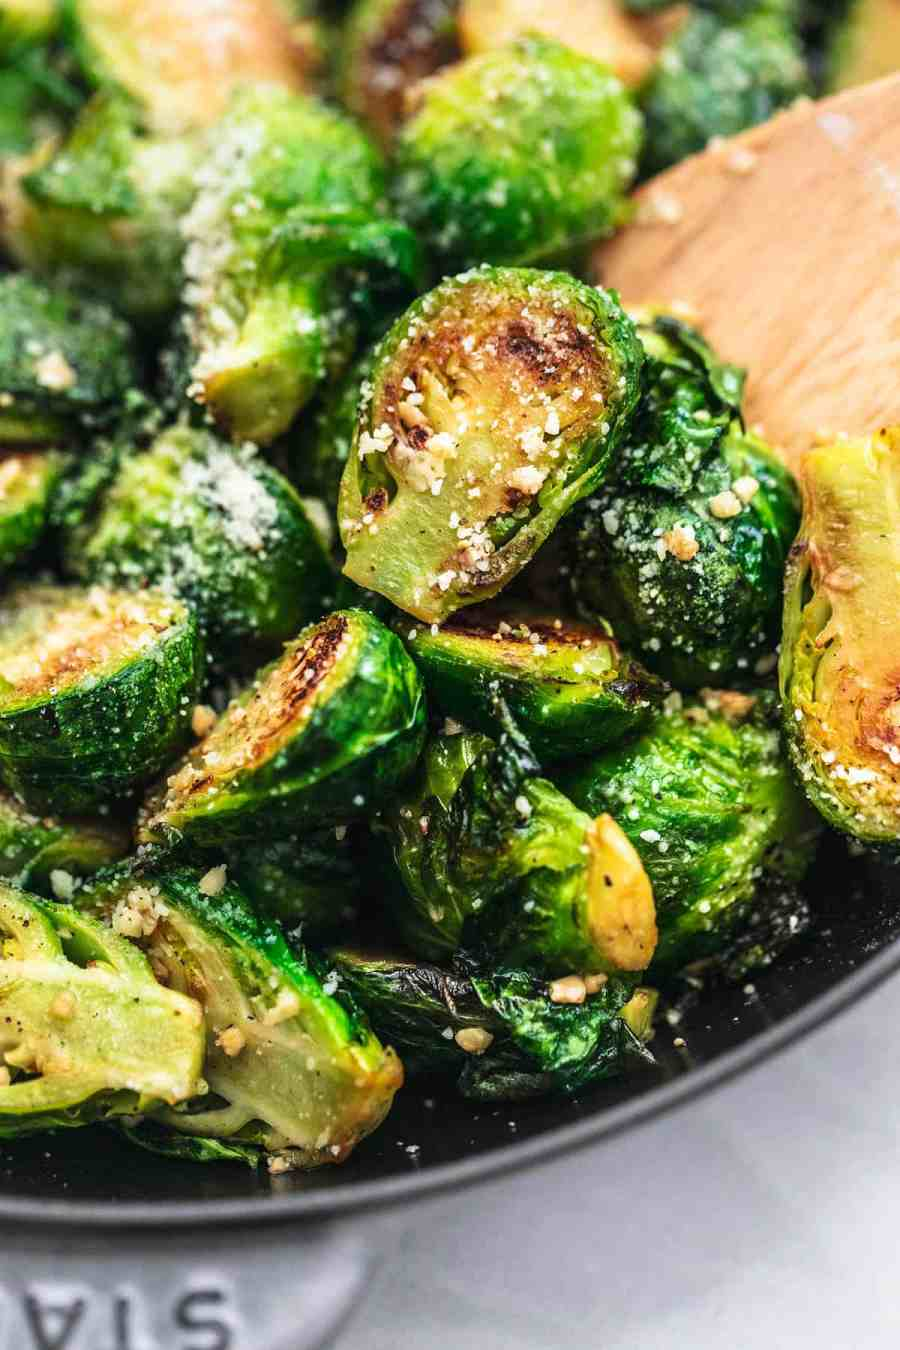 Sauteed Brussels Sprouts Recipe easy side dish with parmesan and garlic | lecremedelacrumb.com